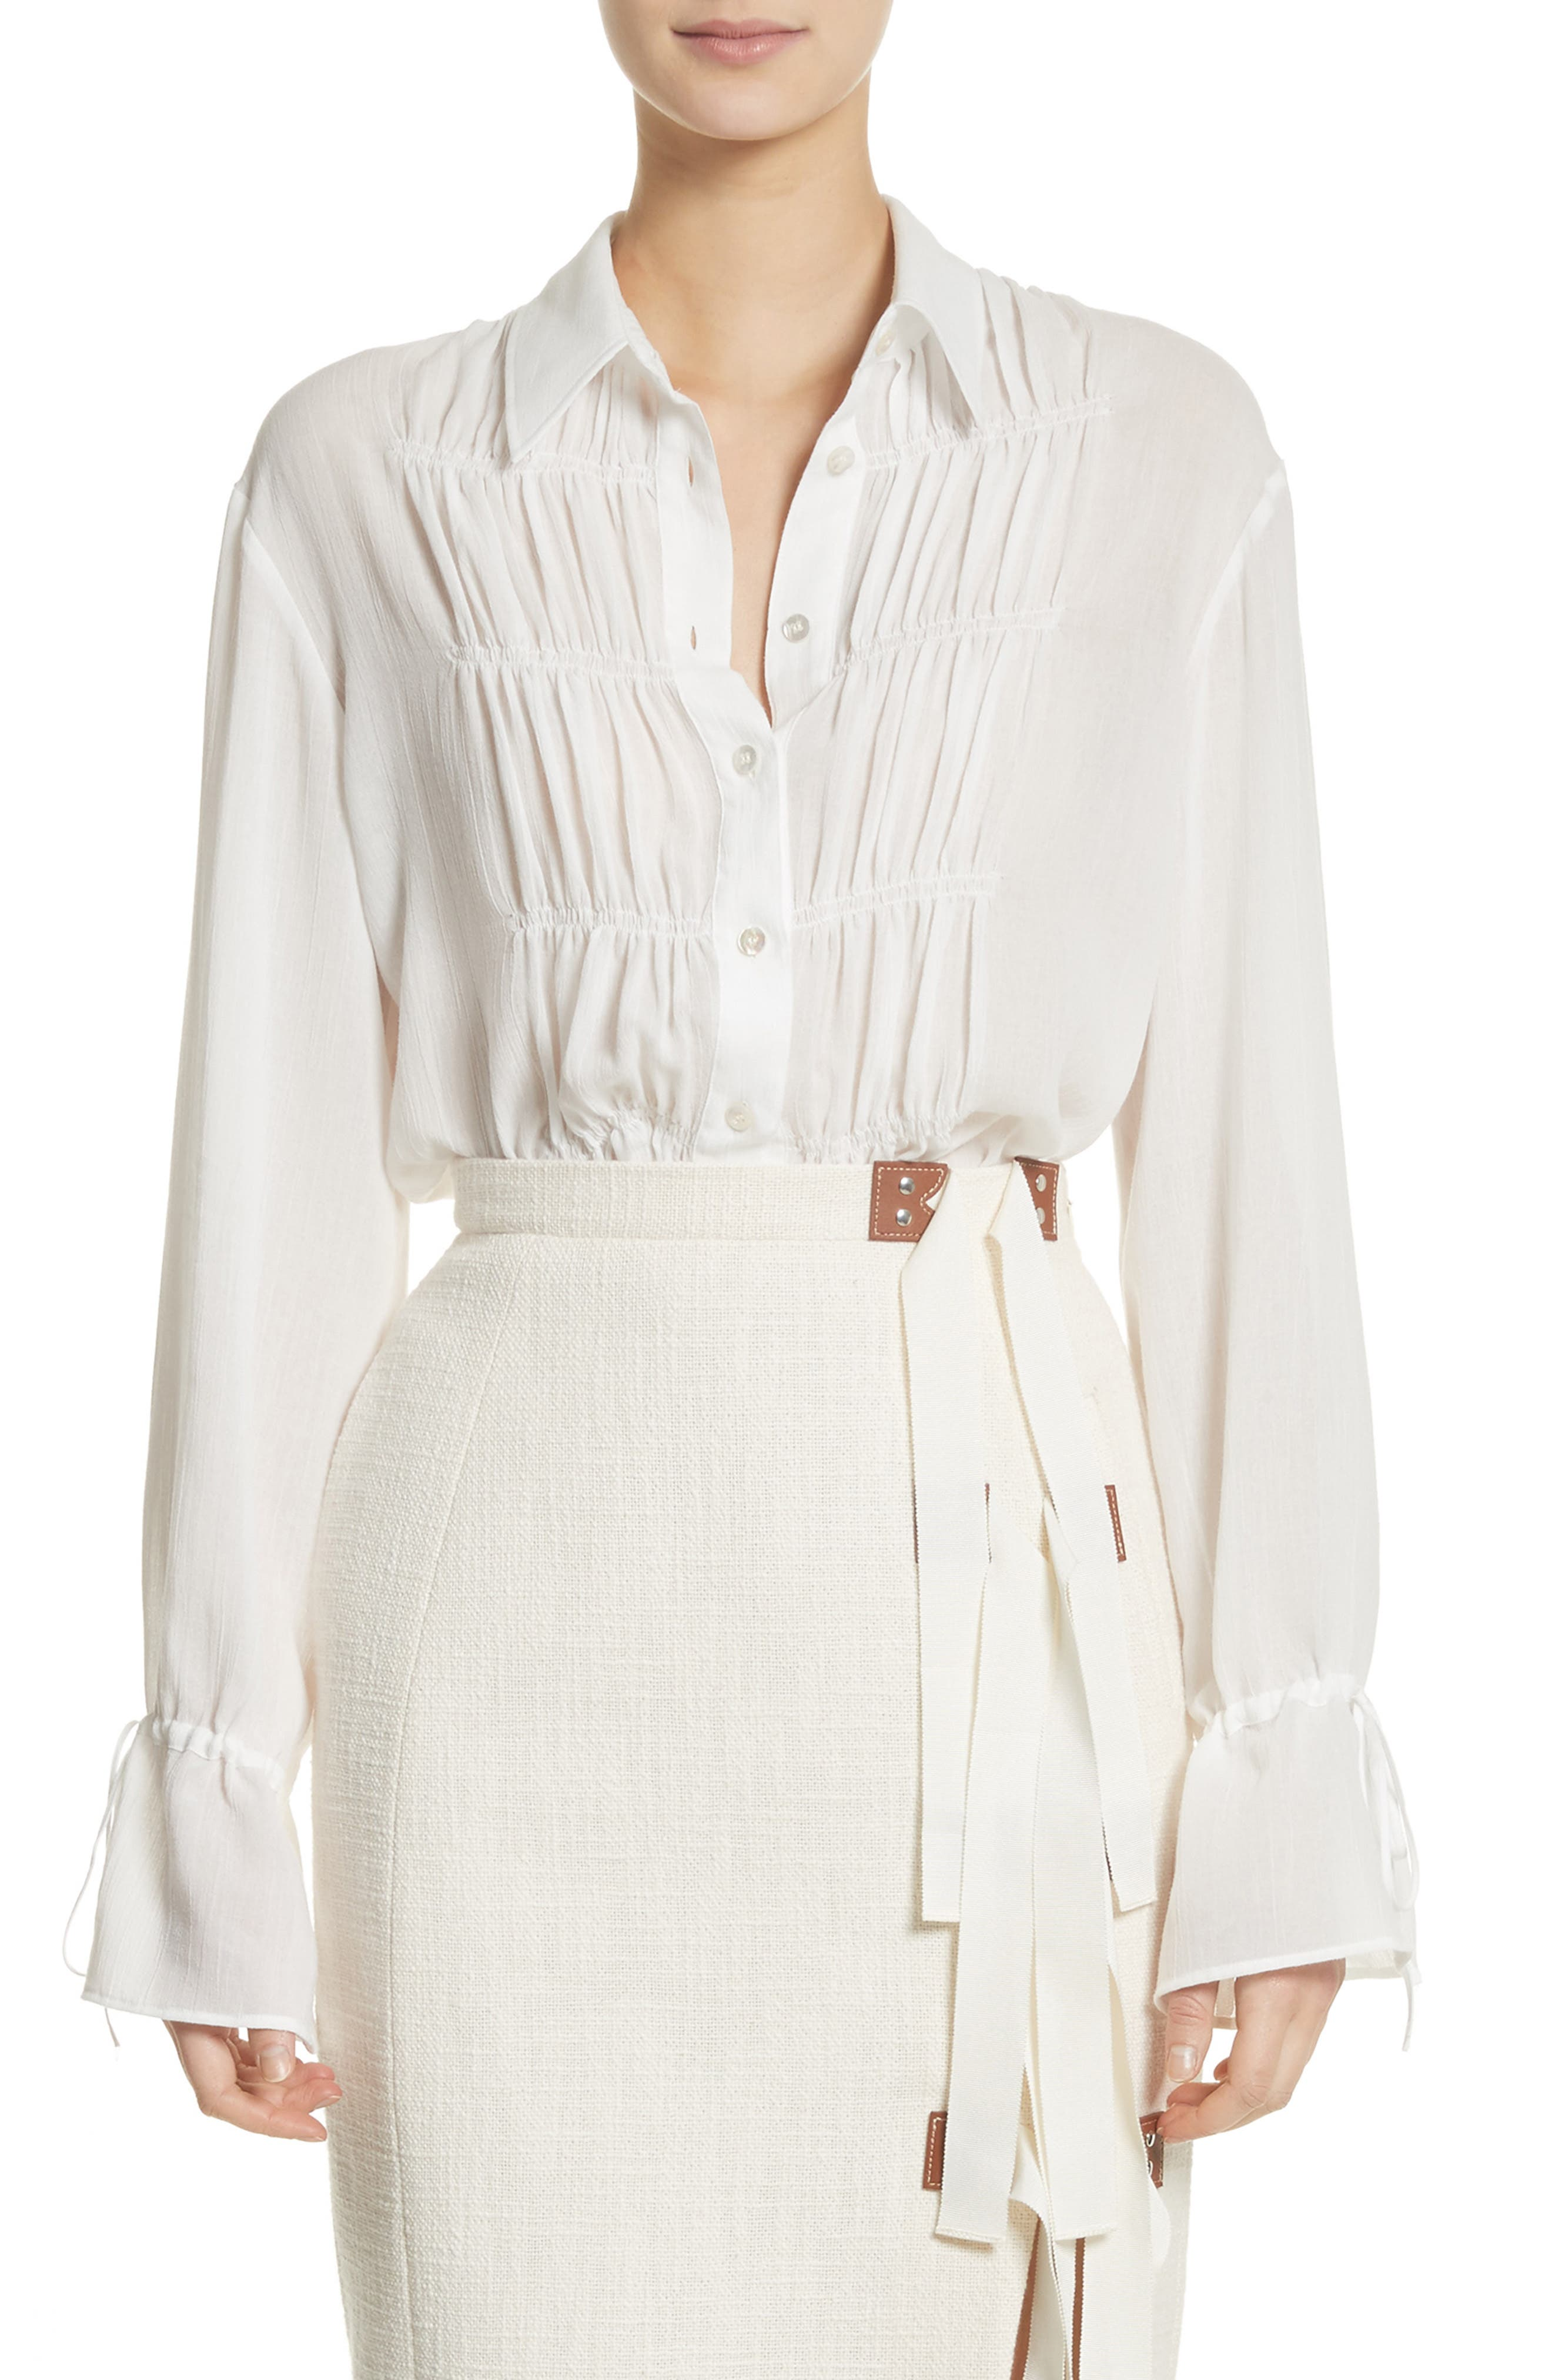 Altuzarra Ruched Detail Blouse